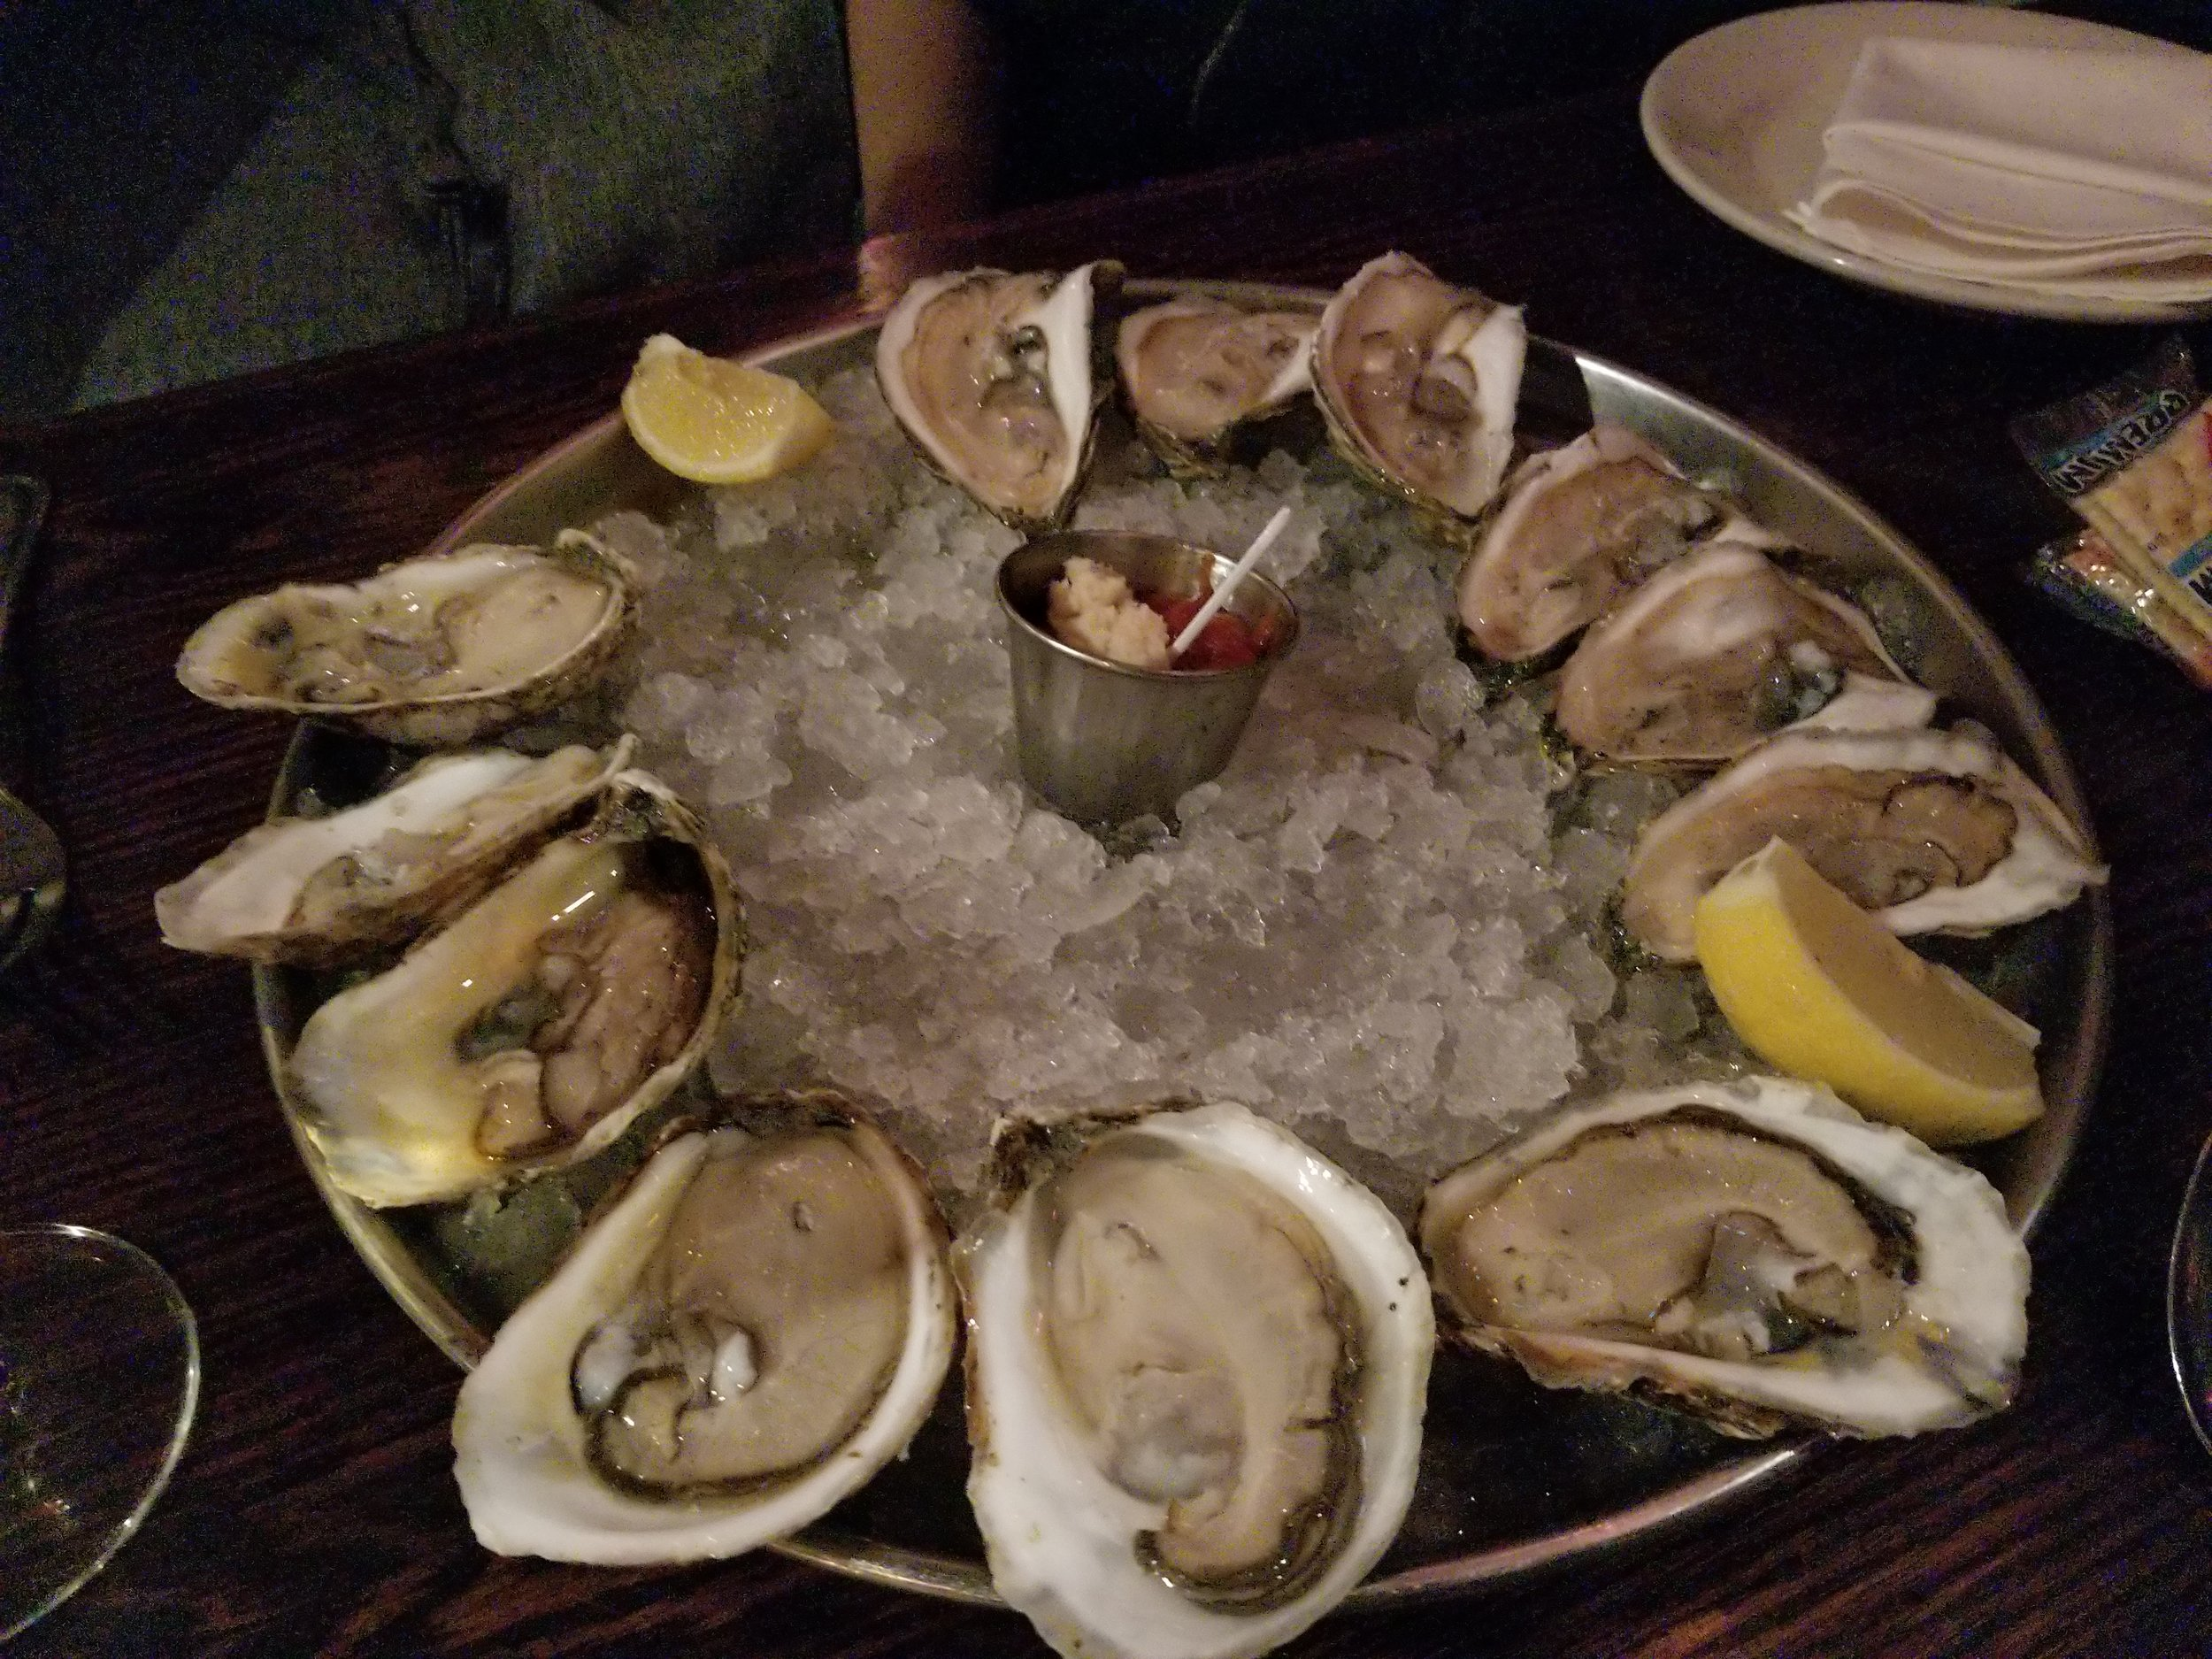 Oyster sampler from my trip to in Boston, MA in 2018